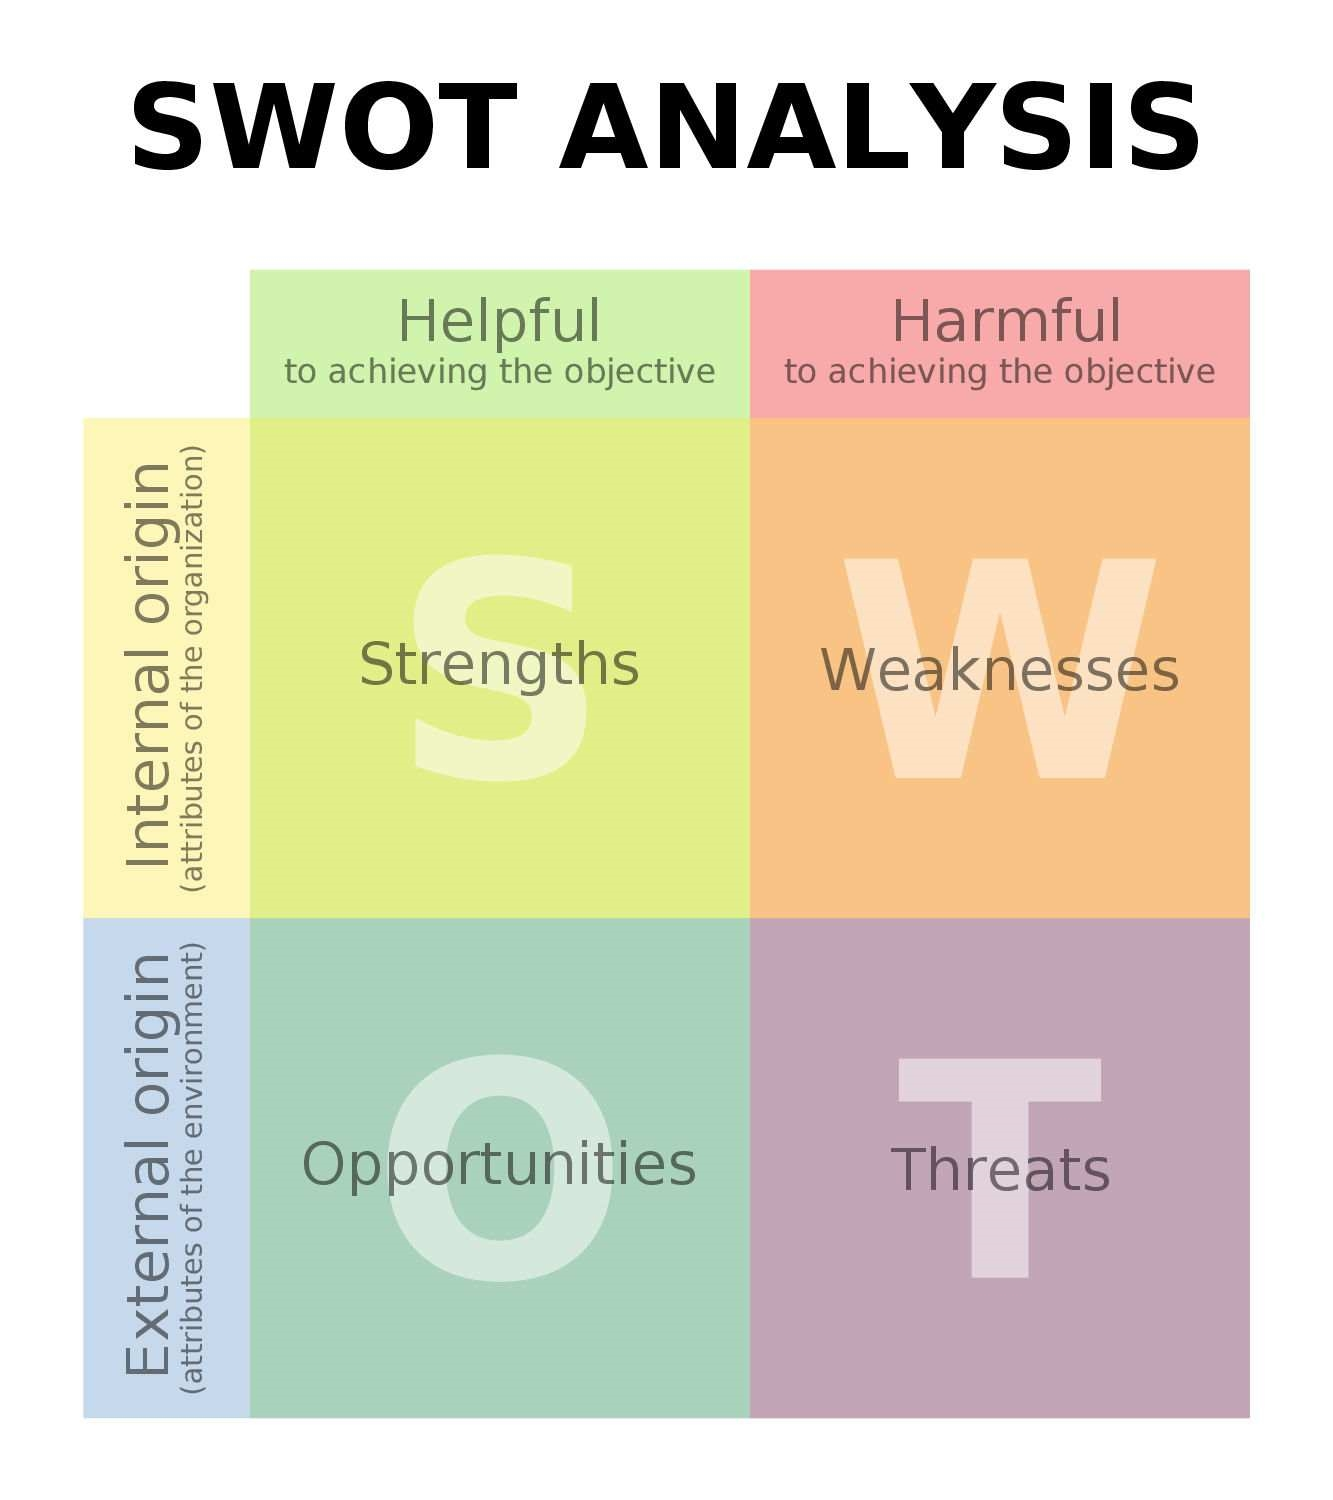 SWOT Analysis – How to Conduct a Proper One